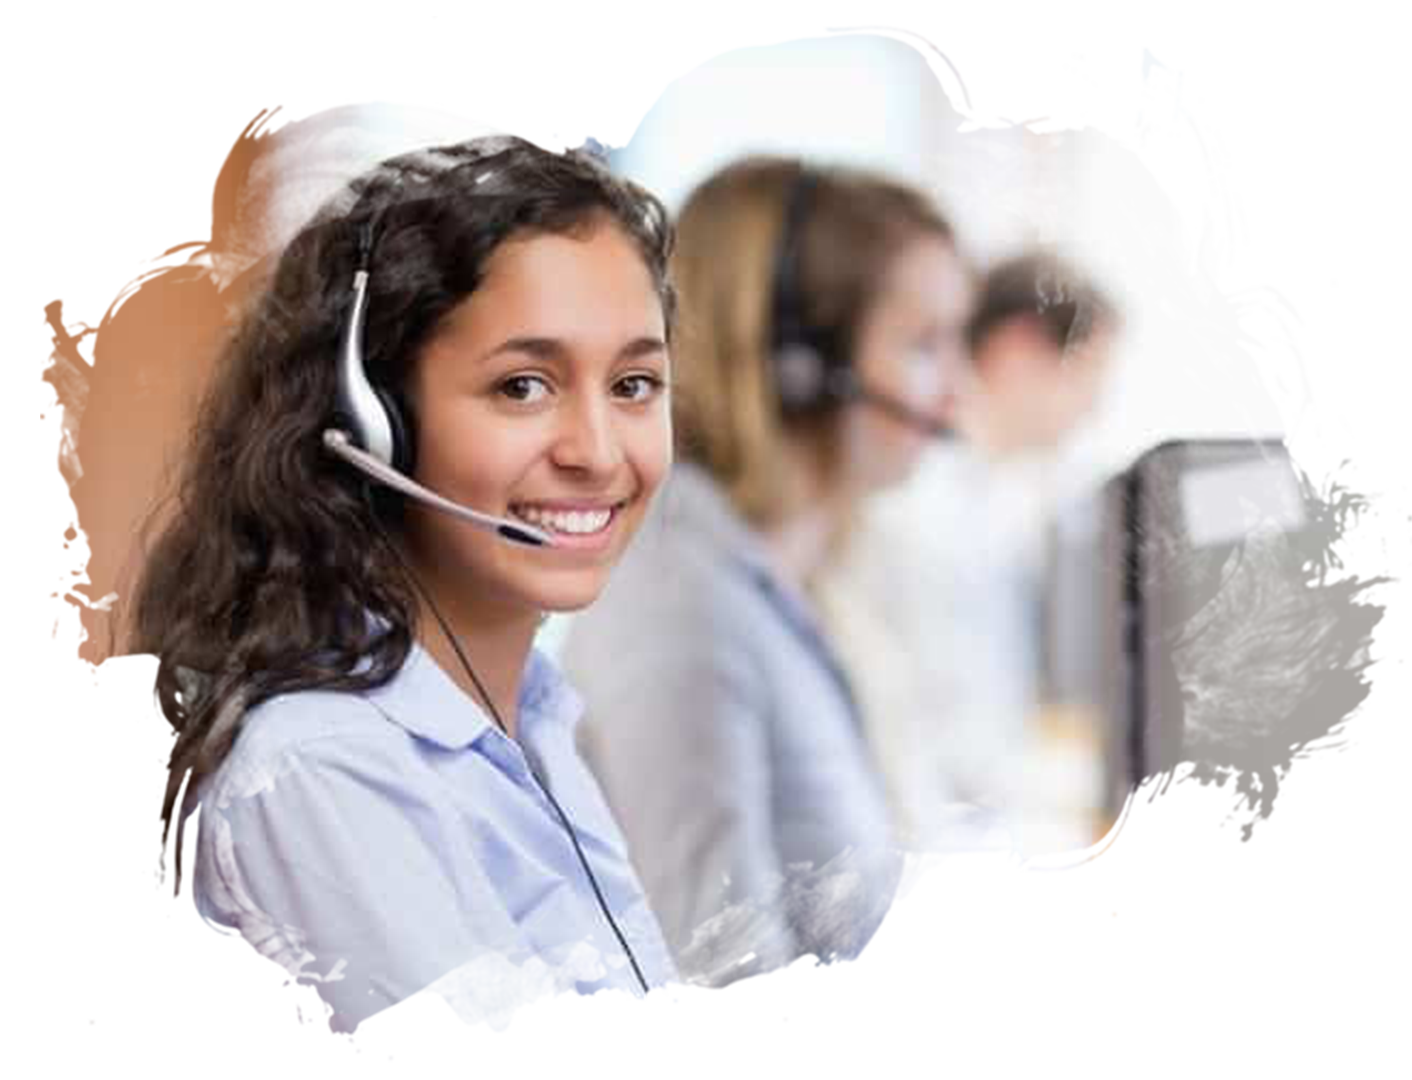 24/7 live phone answering services